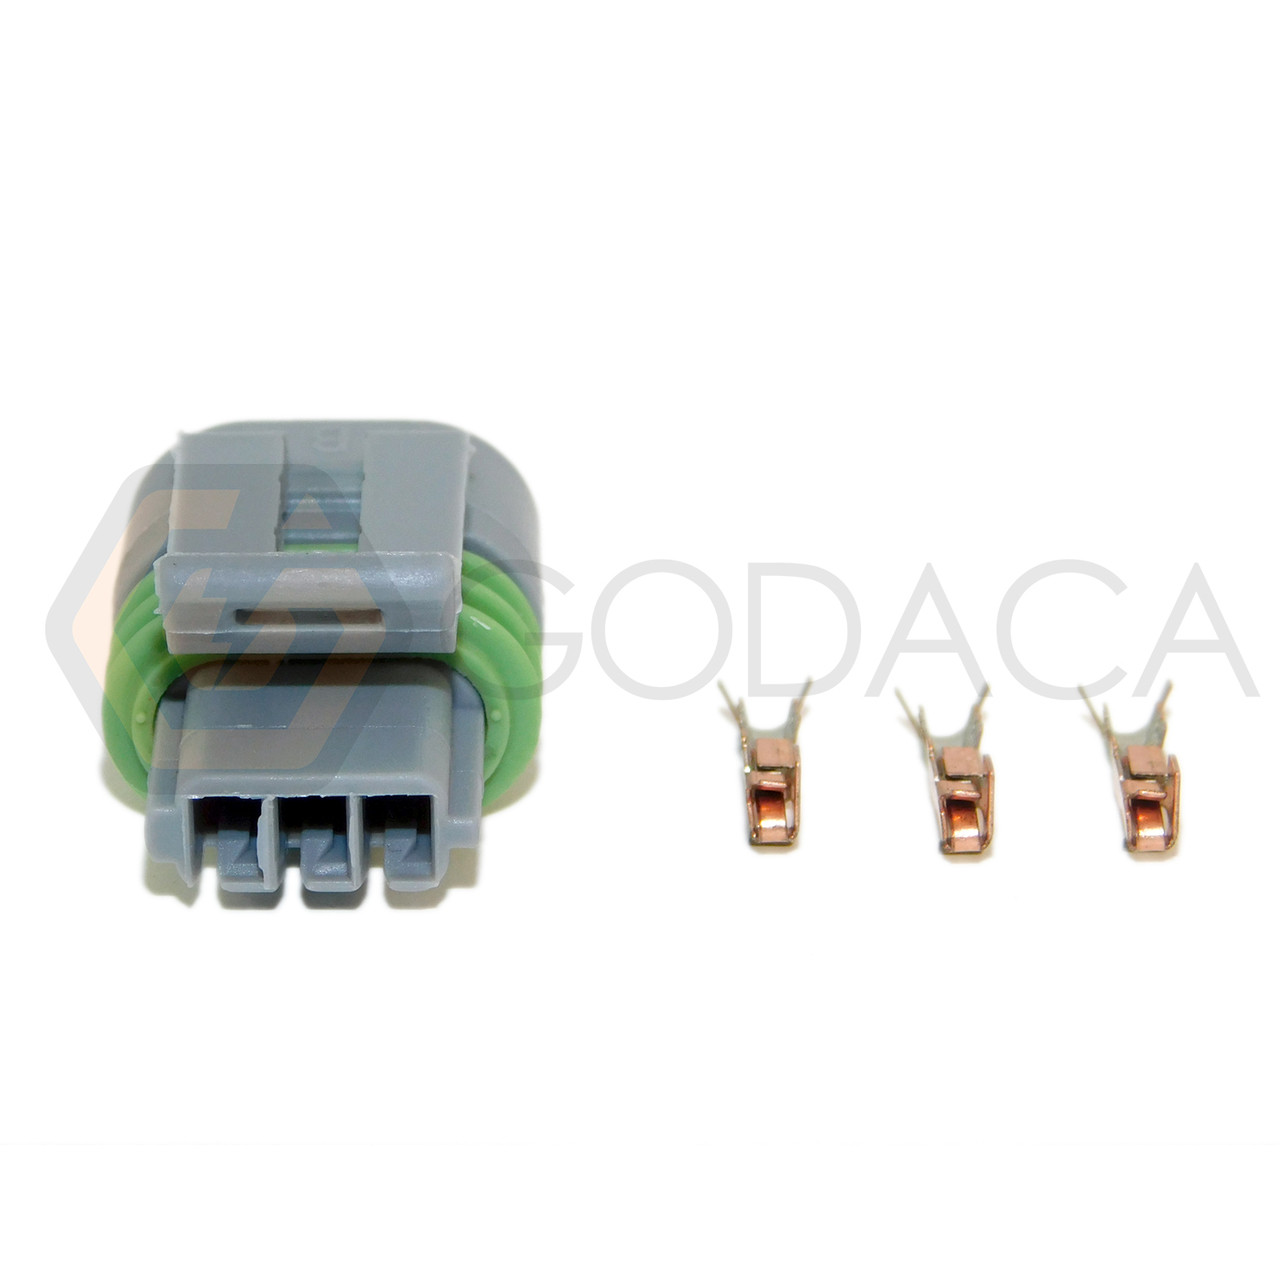 small resolution of 1x connector 3 way for gm camshaft position sensor cps pt148 w out wire godaca llc